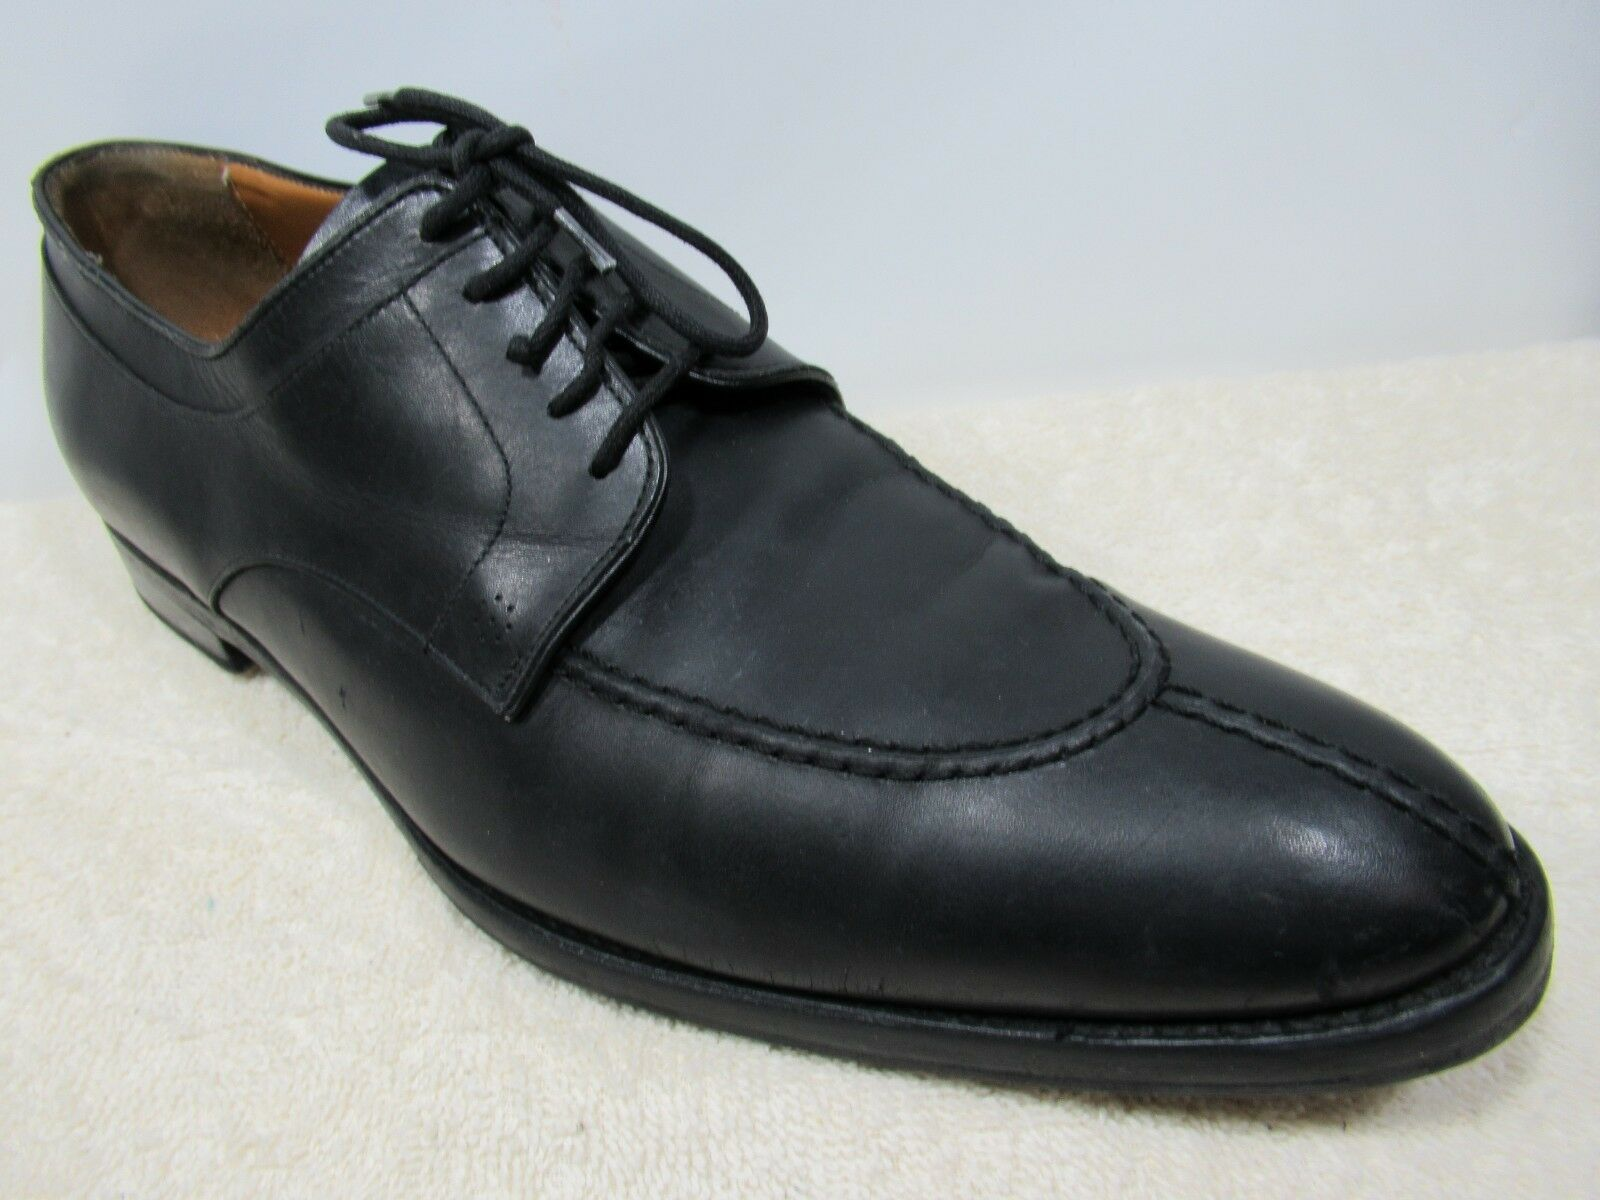 LODING SHOES BLACK LEATHER UPPER SIZE 10 MADE IN ITALY